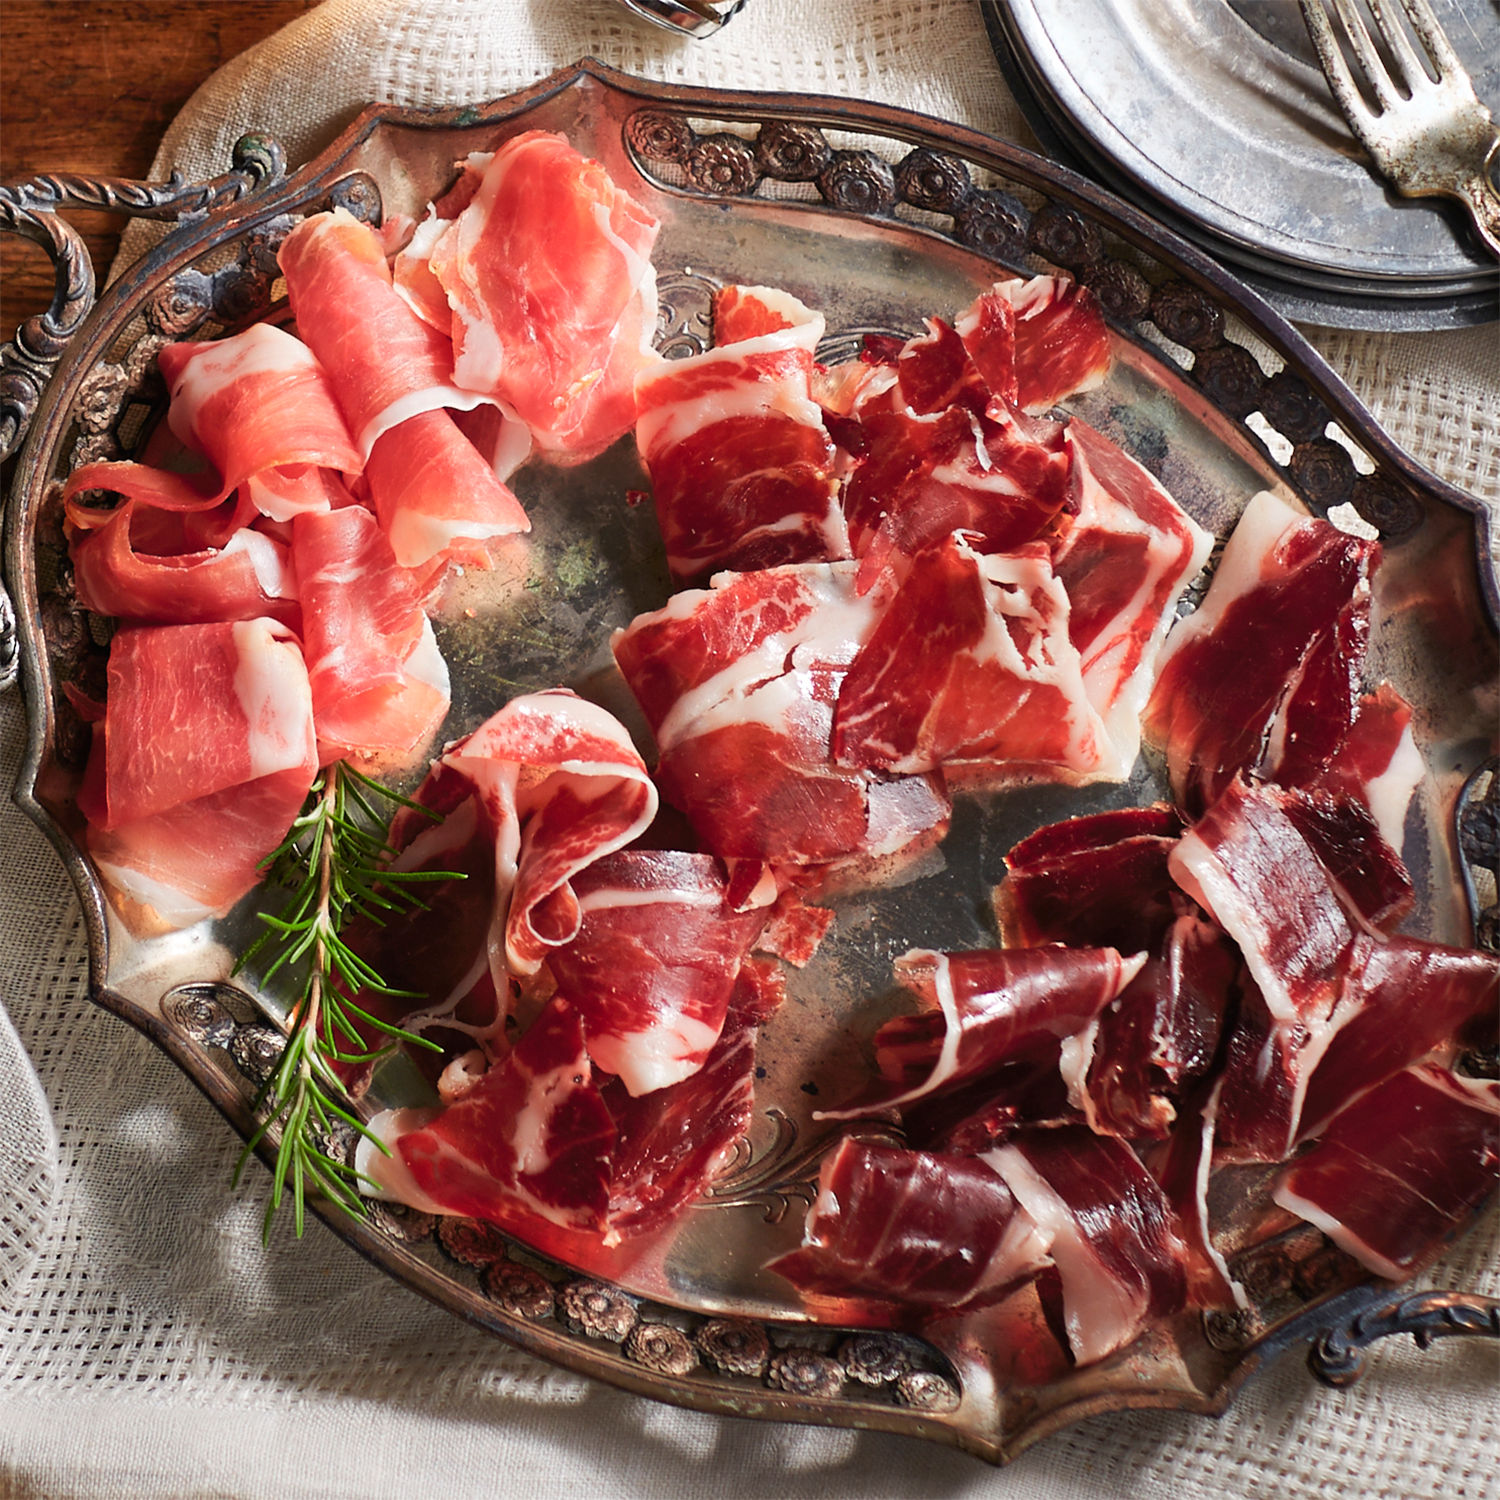 Gourmet Ts For Father S Day Sliced Spanish Jamon Trip